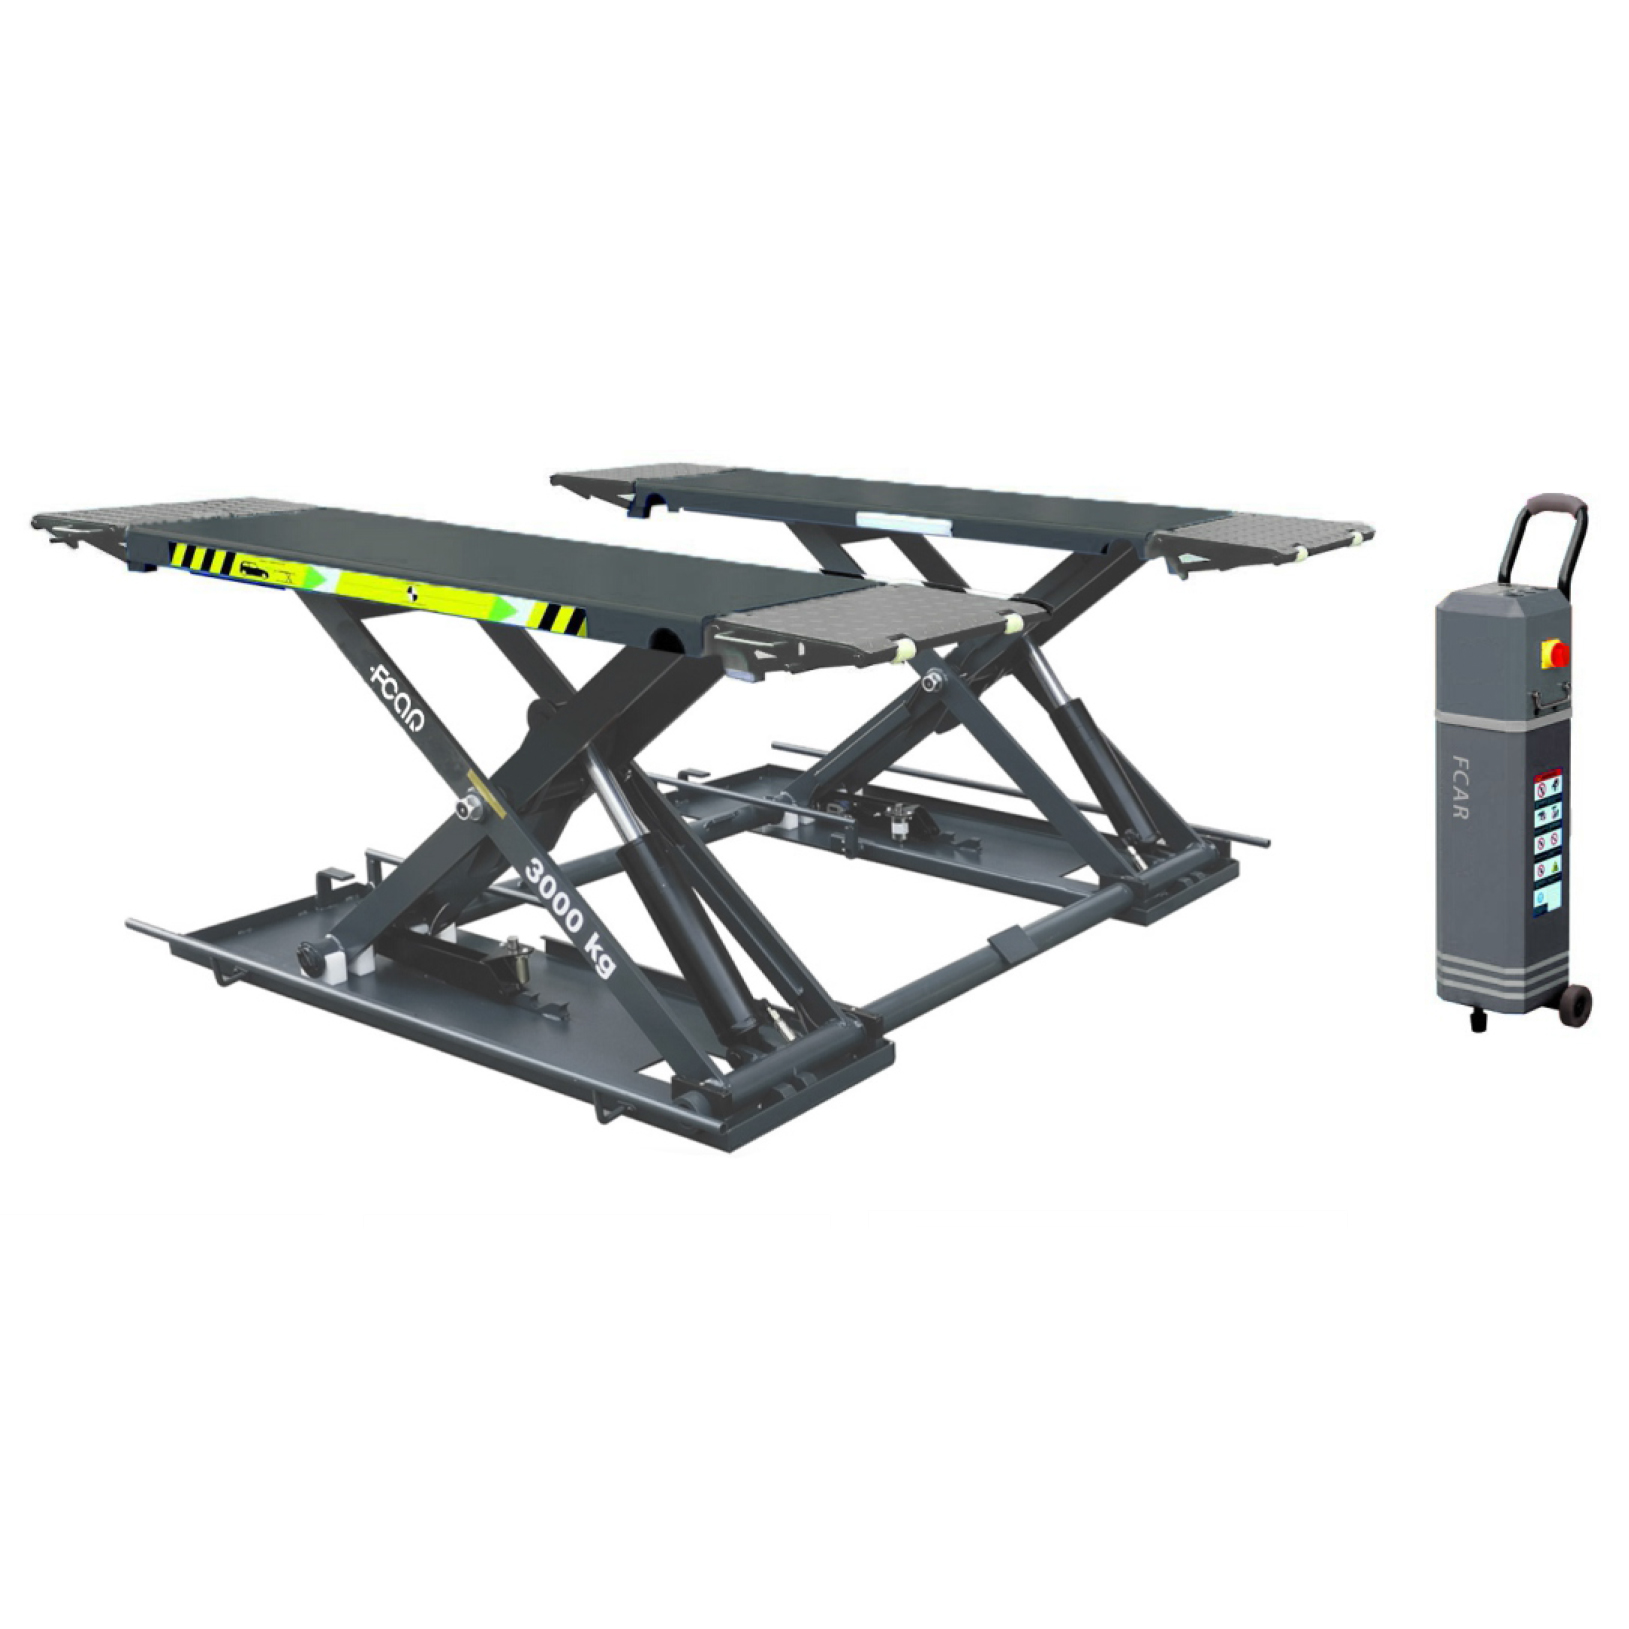 Auto car lift FCAR FC-30CBL on-ground low rise movable scissor lift 3 tons capacity CE tested garage equipment and tools